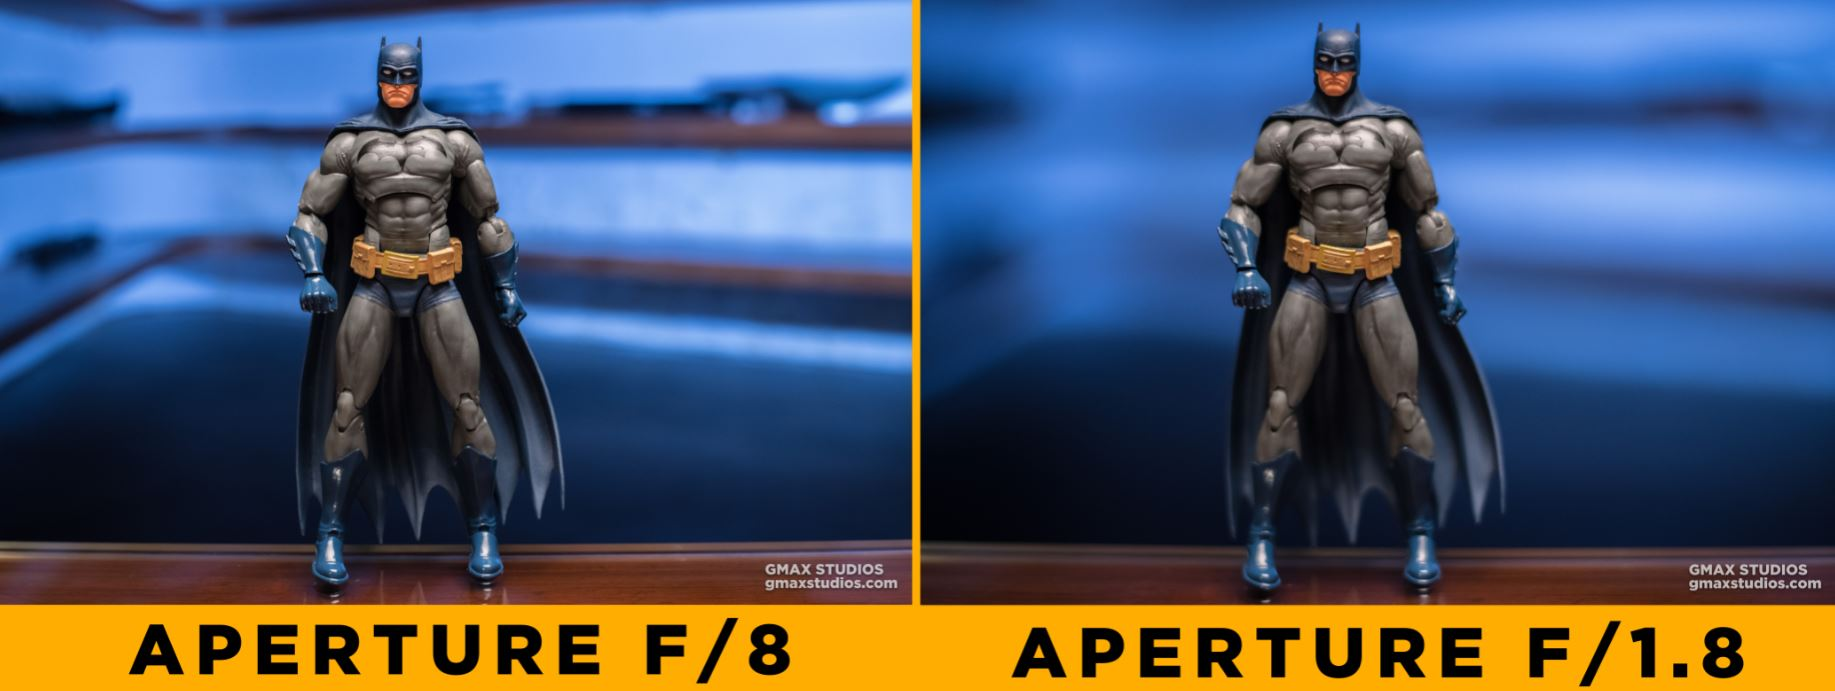 Background blur has mostly to do with your aperture